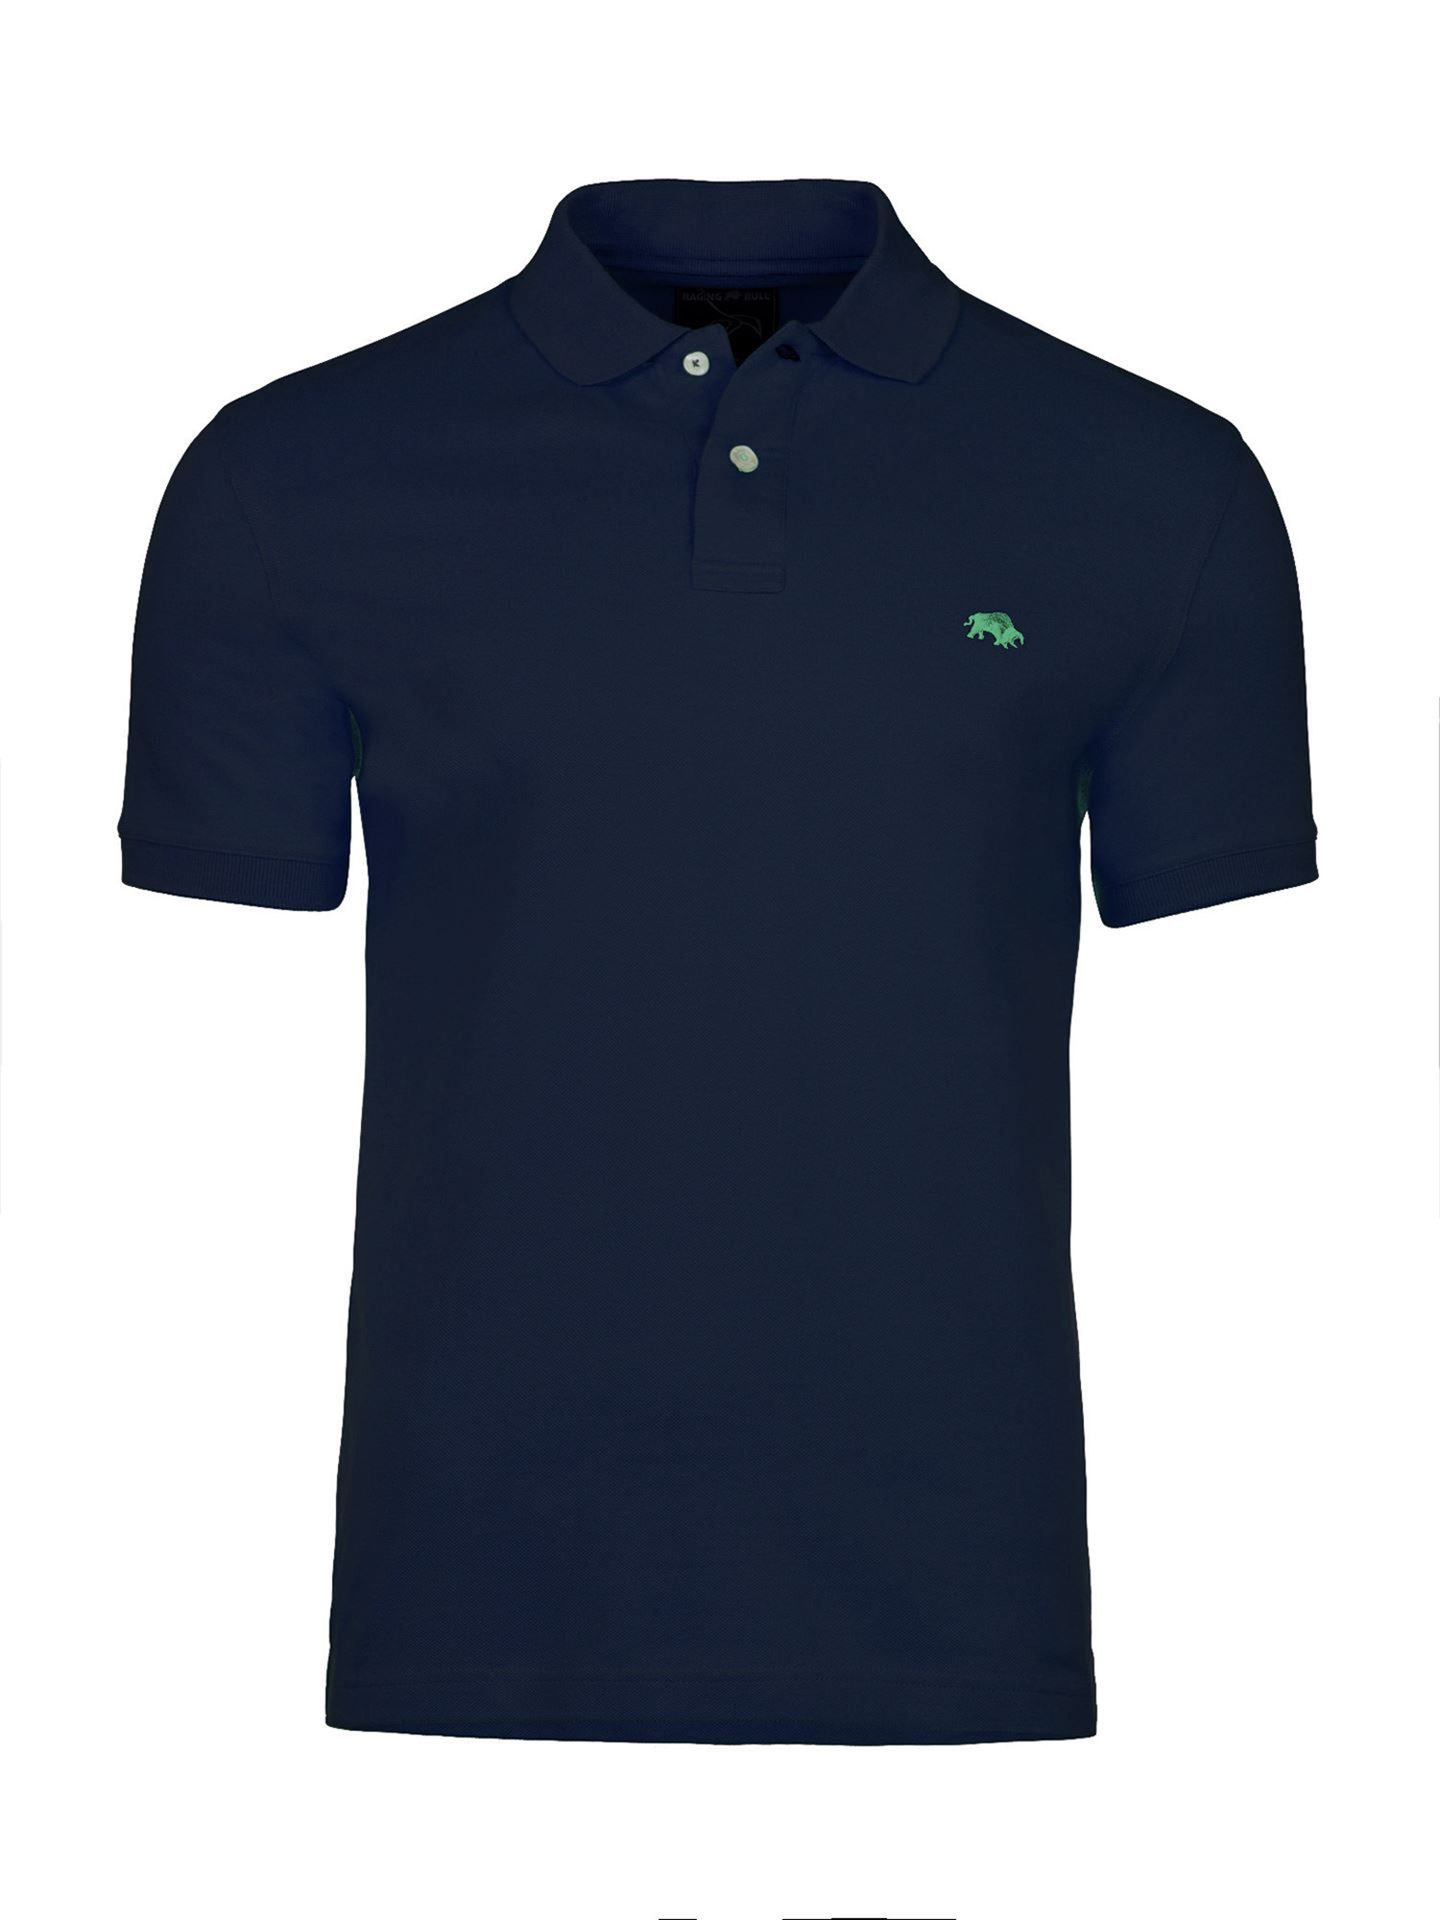 Men's Raging Bull Fly Fit Plain Polo, Blue